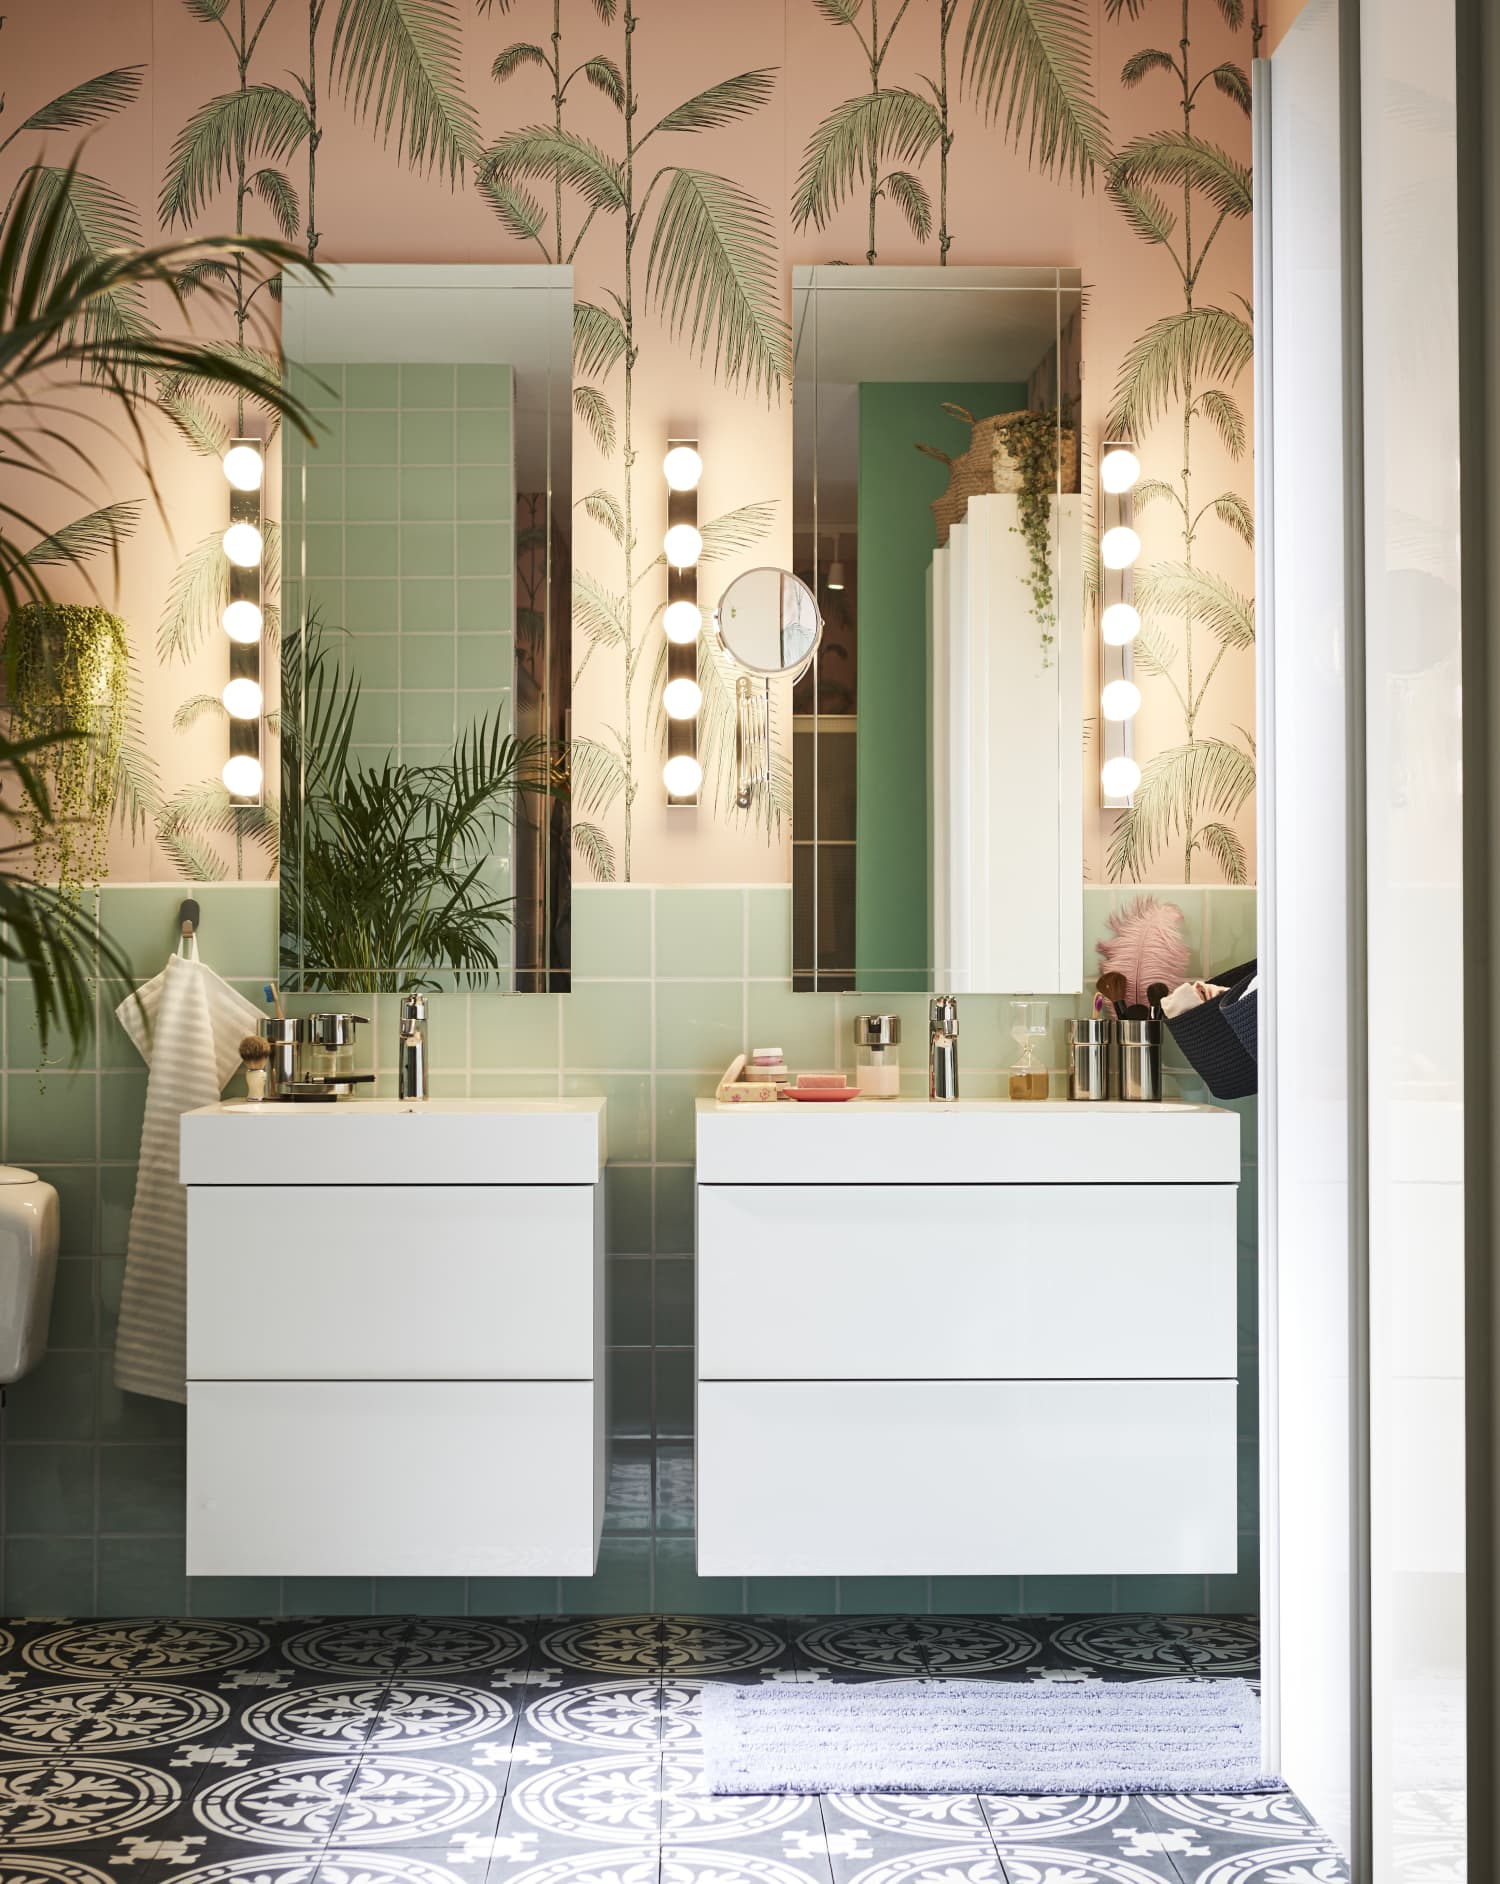 8 Trends That Will Be Huge in 2020, According to the IKEA Catalog